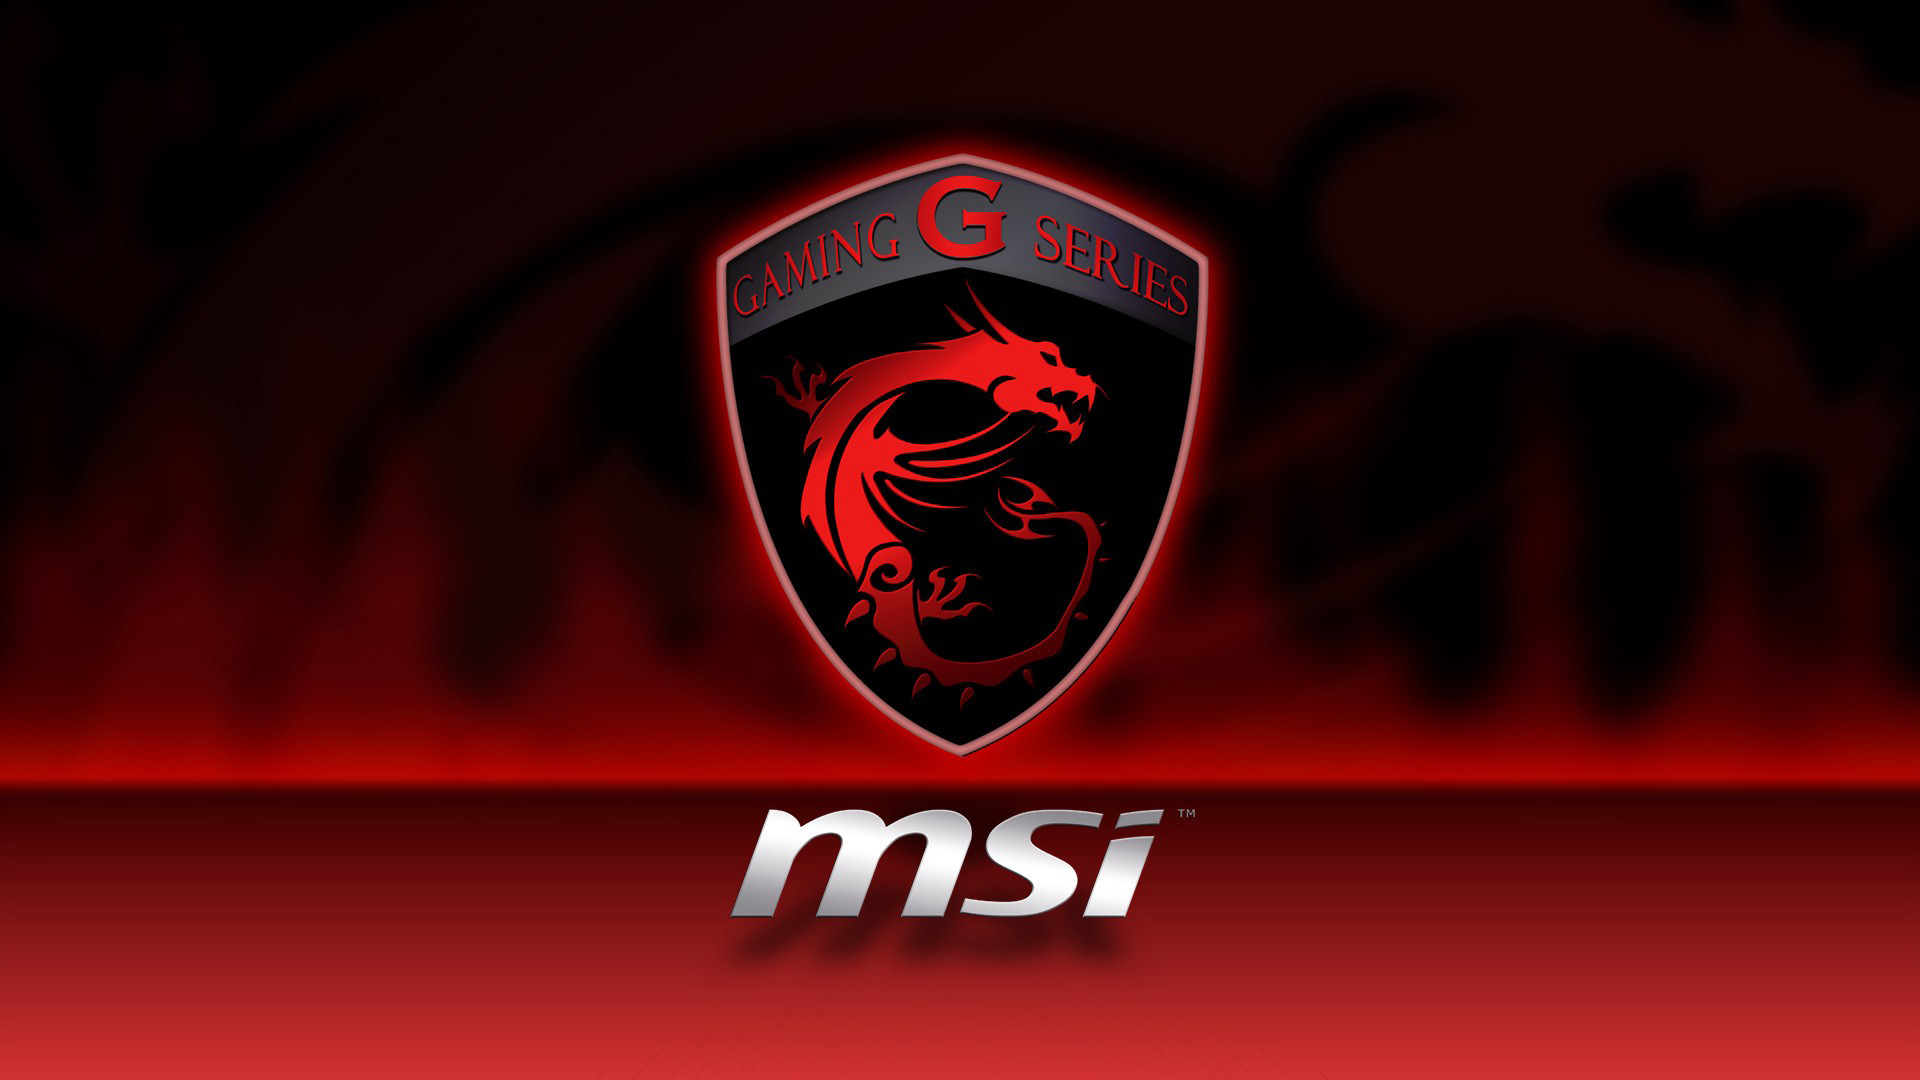 Dragon Wallpaper Hd For Pc Msi 1366x768 Hd Wallpaper 81 Images